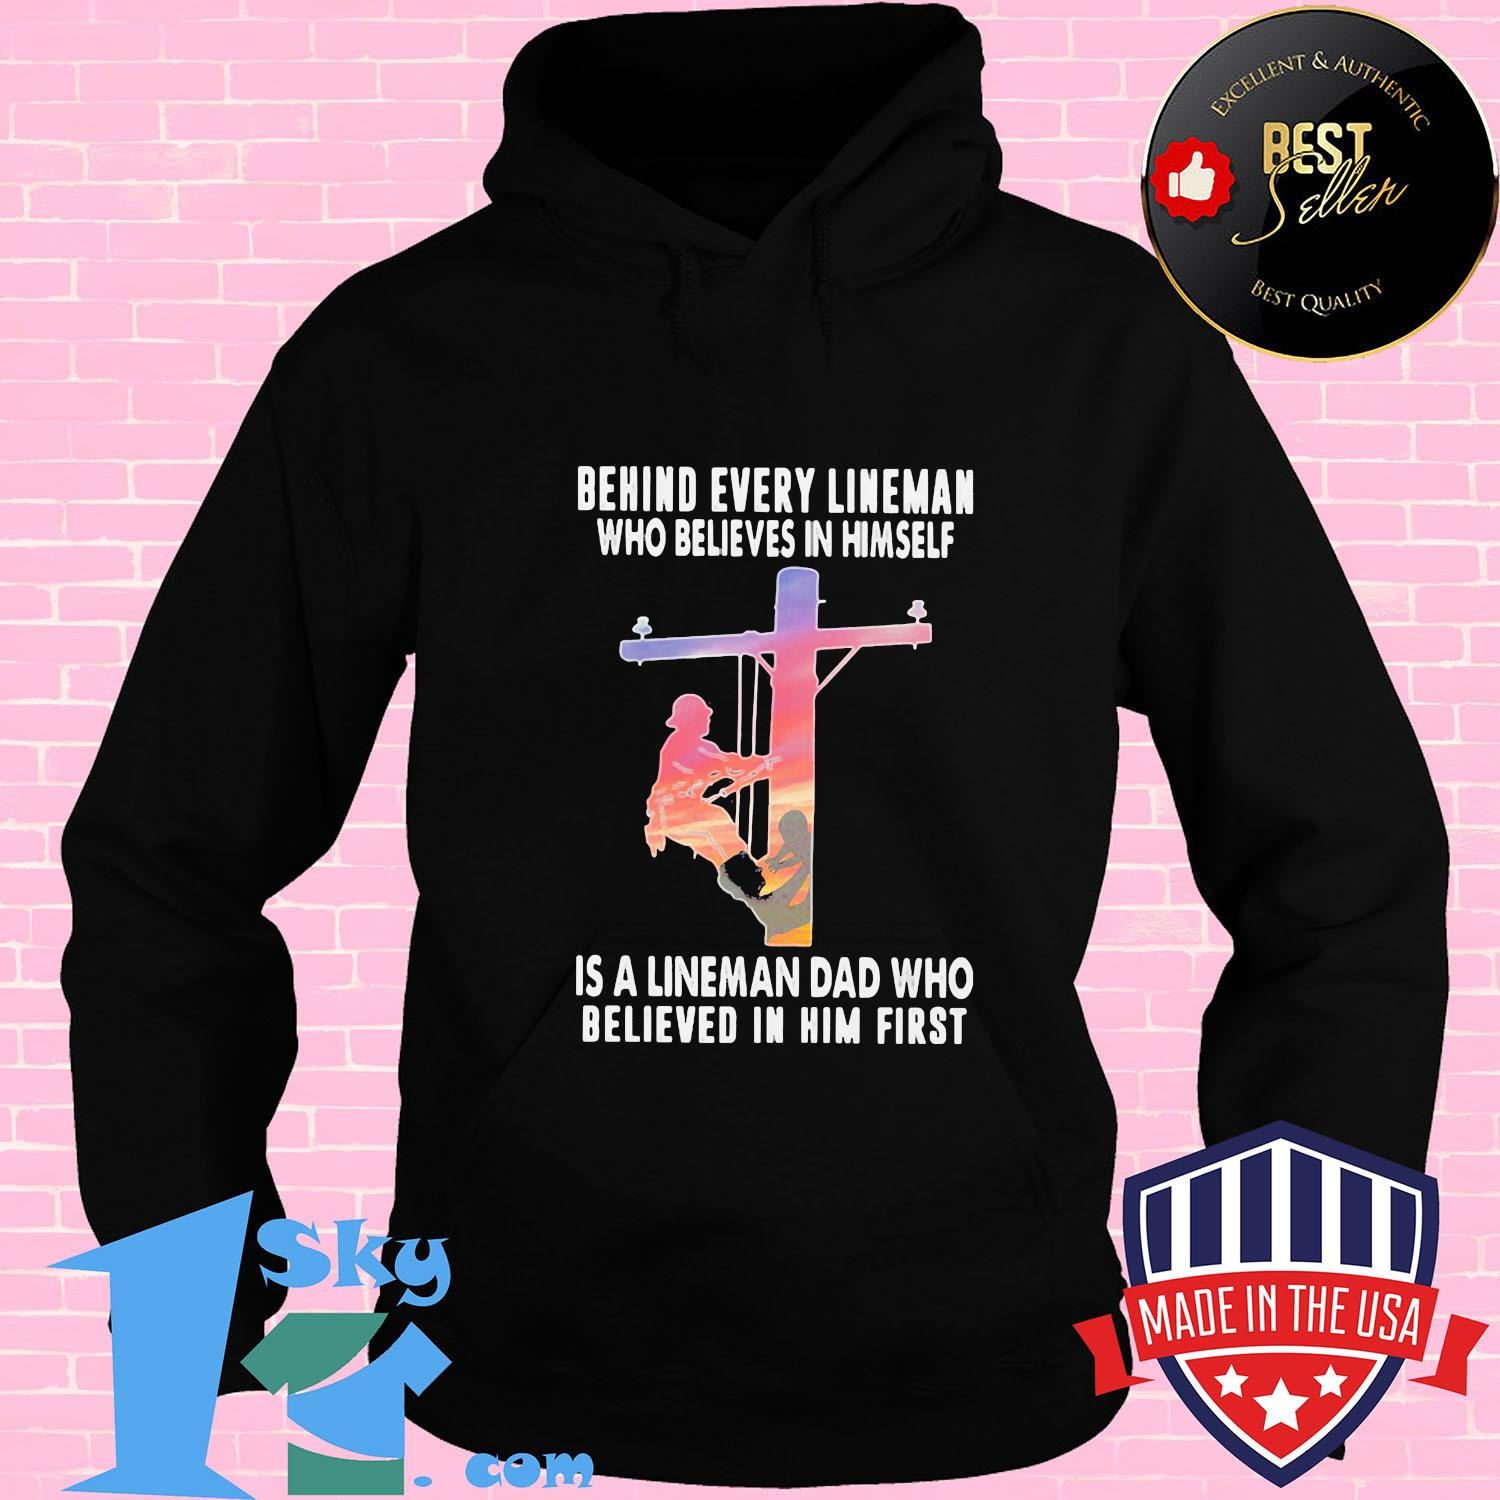 4e6a4b46 behind every lineman who believes in himself is a lineman dad shirt hoodie - Shop trending - We offer all trend shirts - 1SkyTee